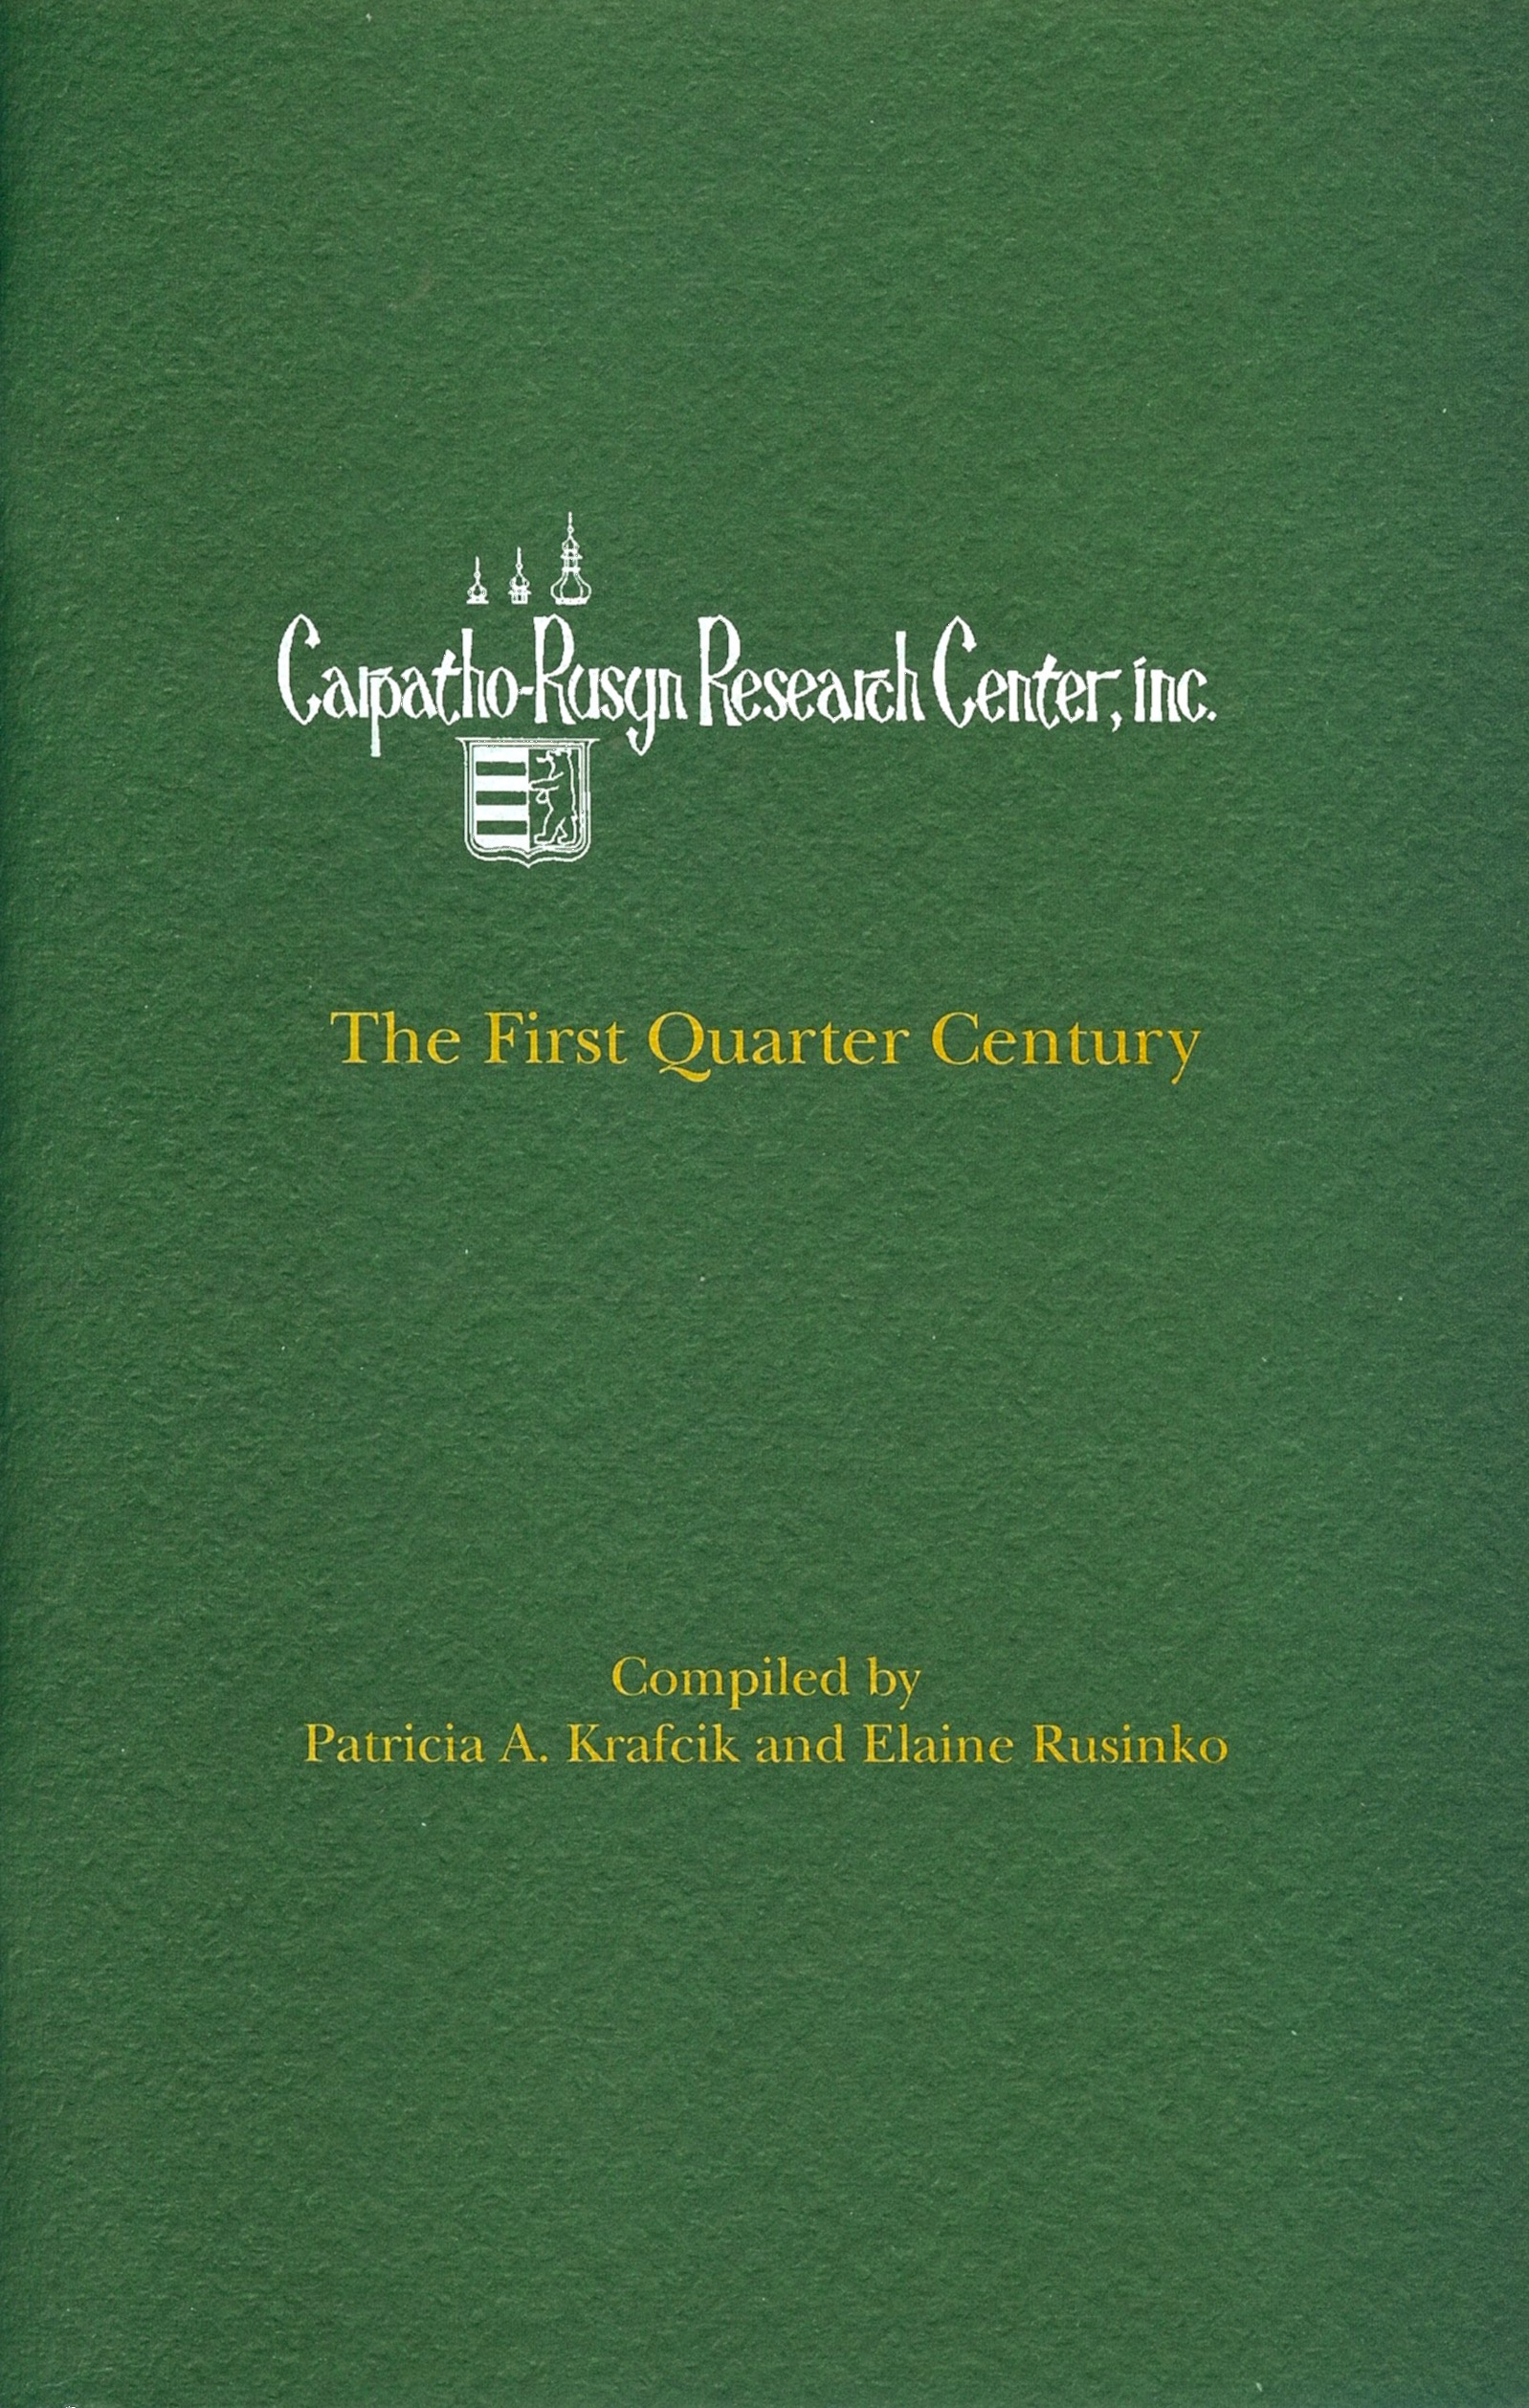 The Carpatho-Rusyn Research Center: The First Quarter Century